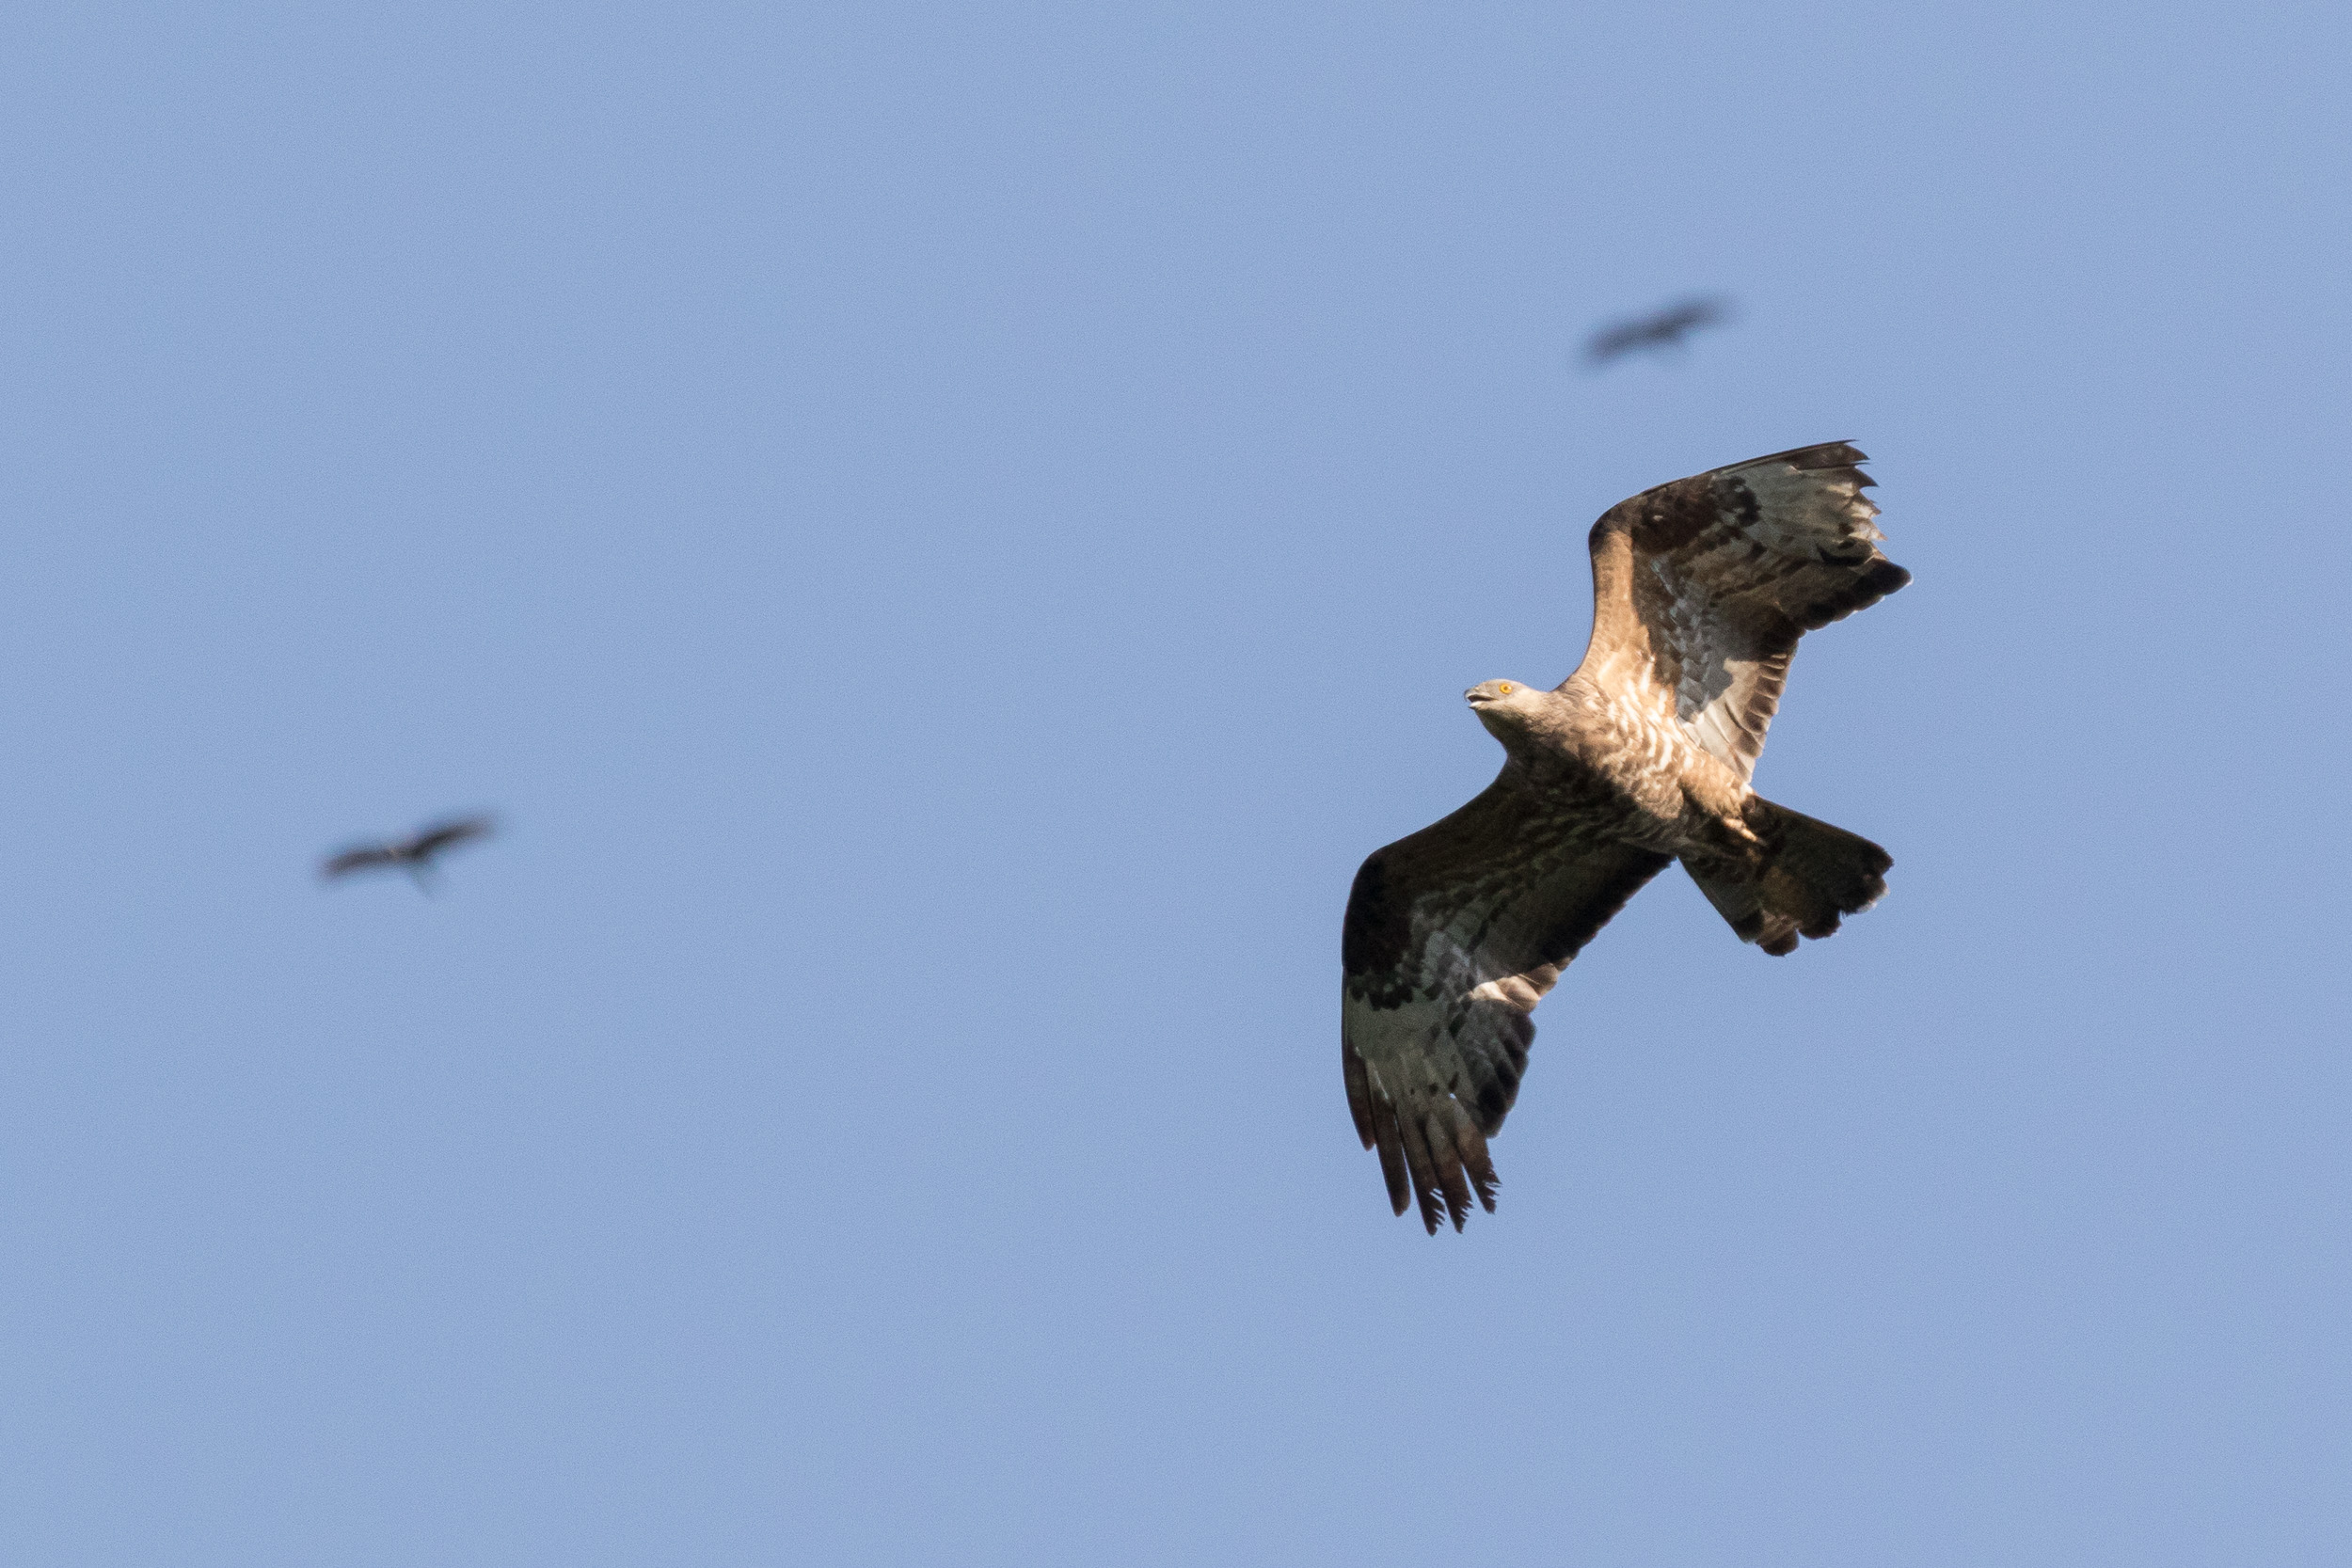 Honey Buzzard (Pernis apivorus). Unfortunately a significant share of the birds get shot on various spots along their migratory route. It is incredible, however, how they just keep going despite the damage…